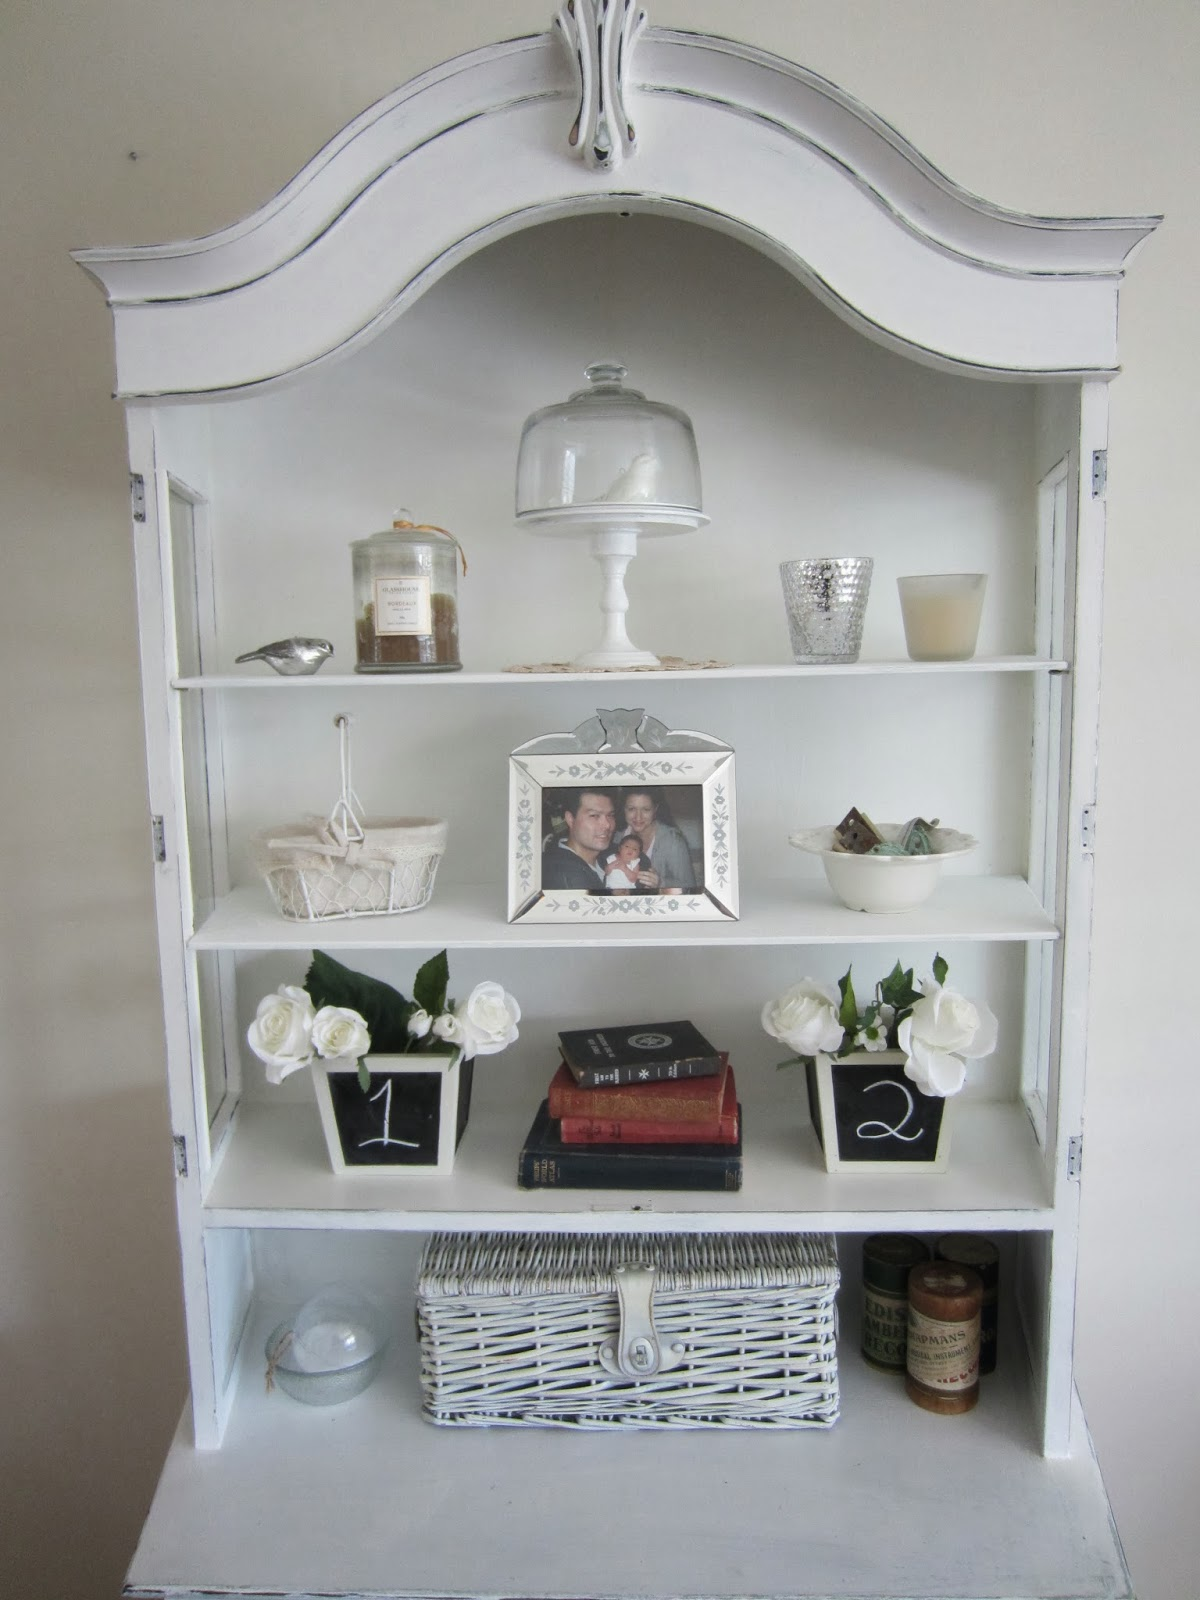 Dining room display cabinet restyled for christmas for Dining room display cabinets